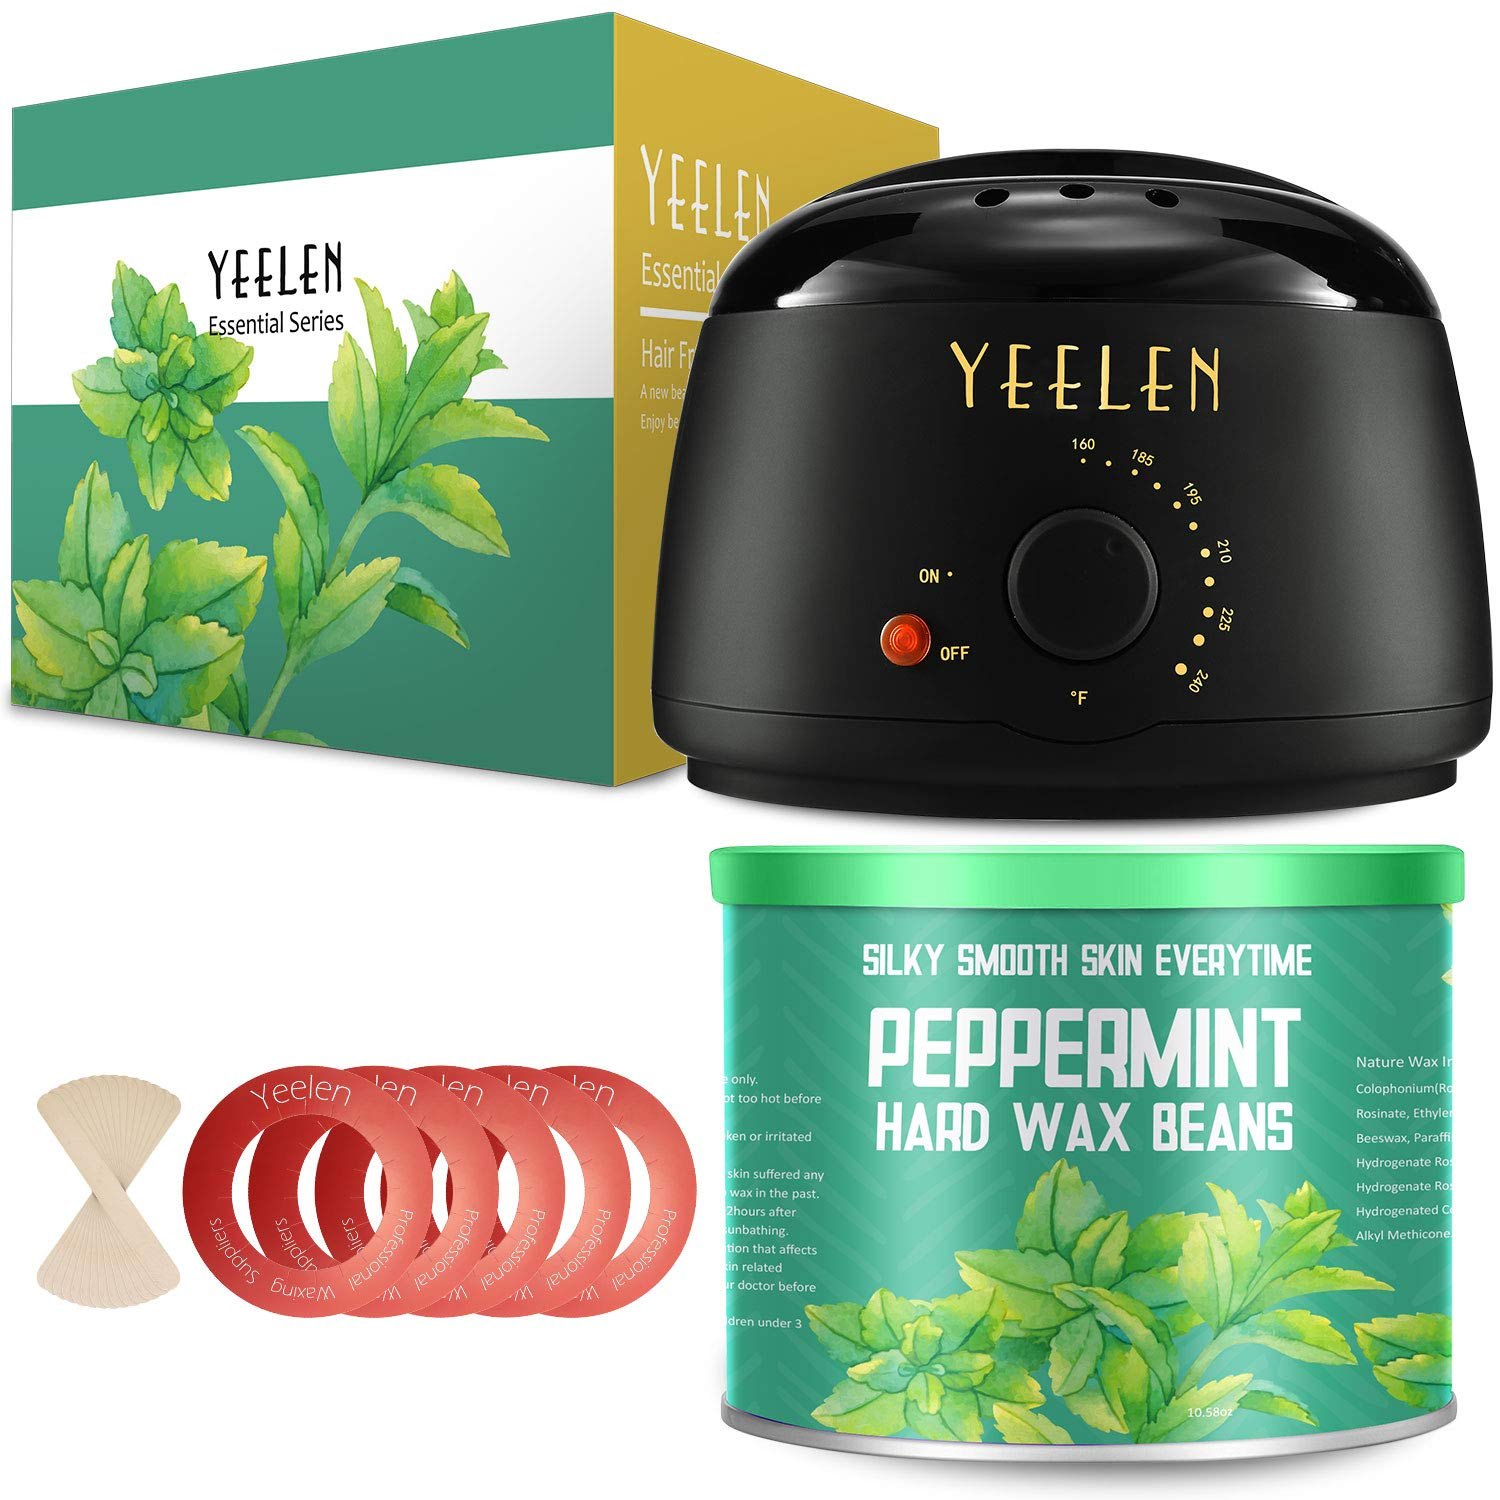 【Peppermint Essential Oil】Yeelen Waxing Kit Hair Removal Wax Warmer with 10.58oz Peppermint Essential Hard Wax Beans, Wax Applicator Sticks and Wax Warmer Collars